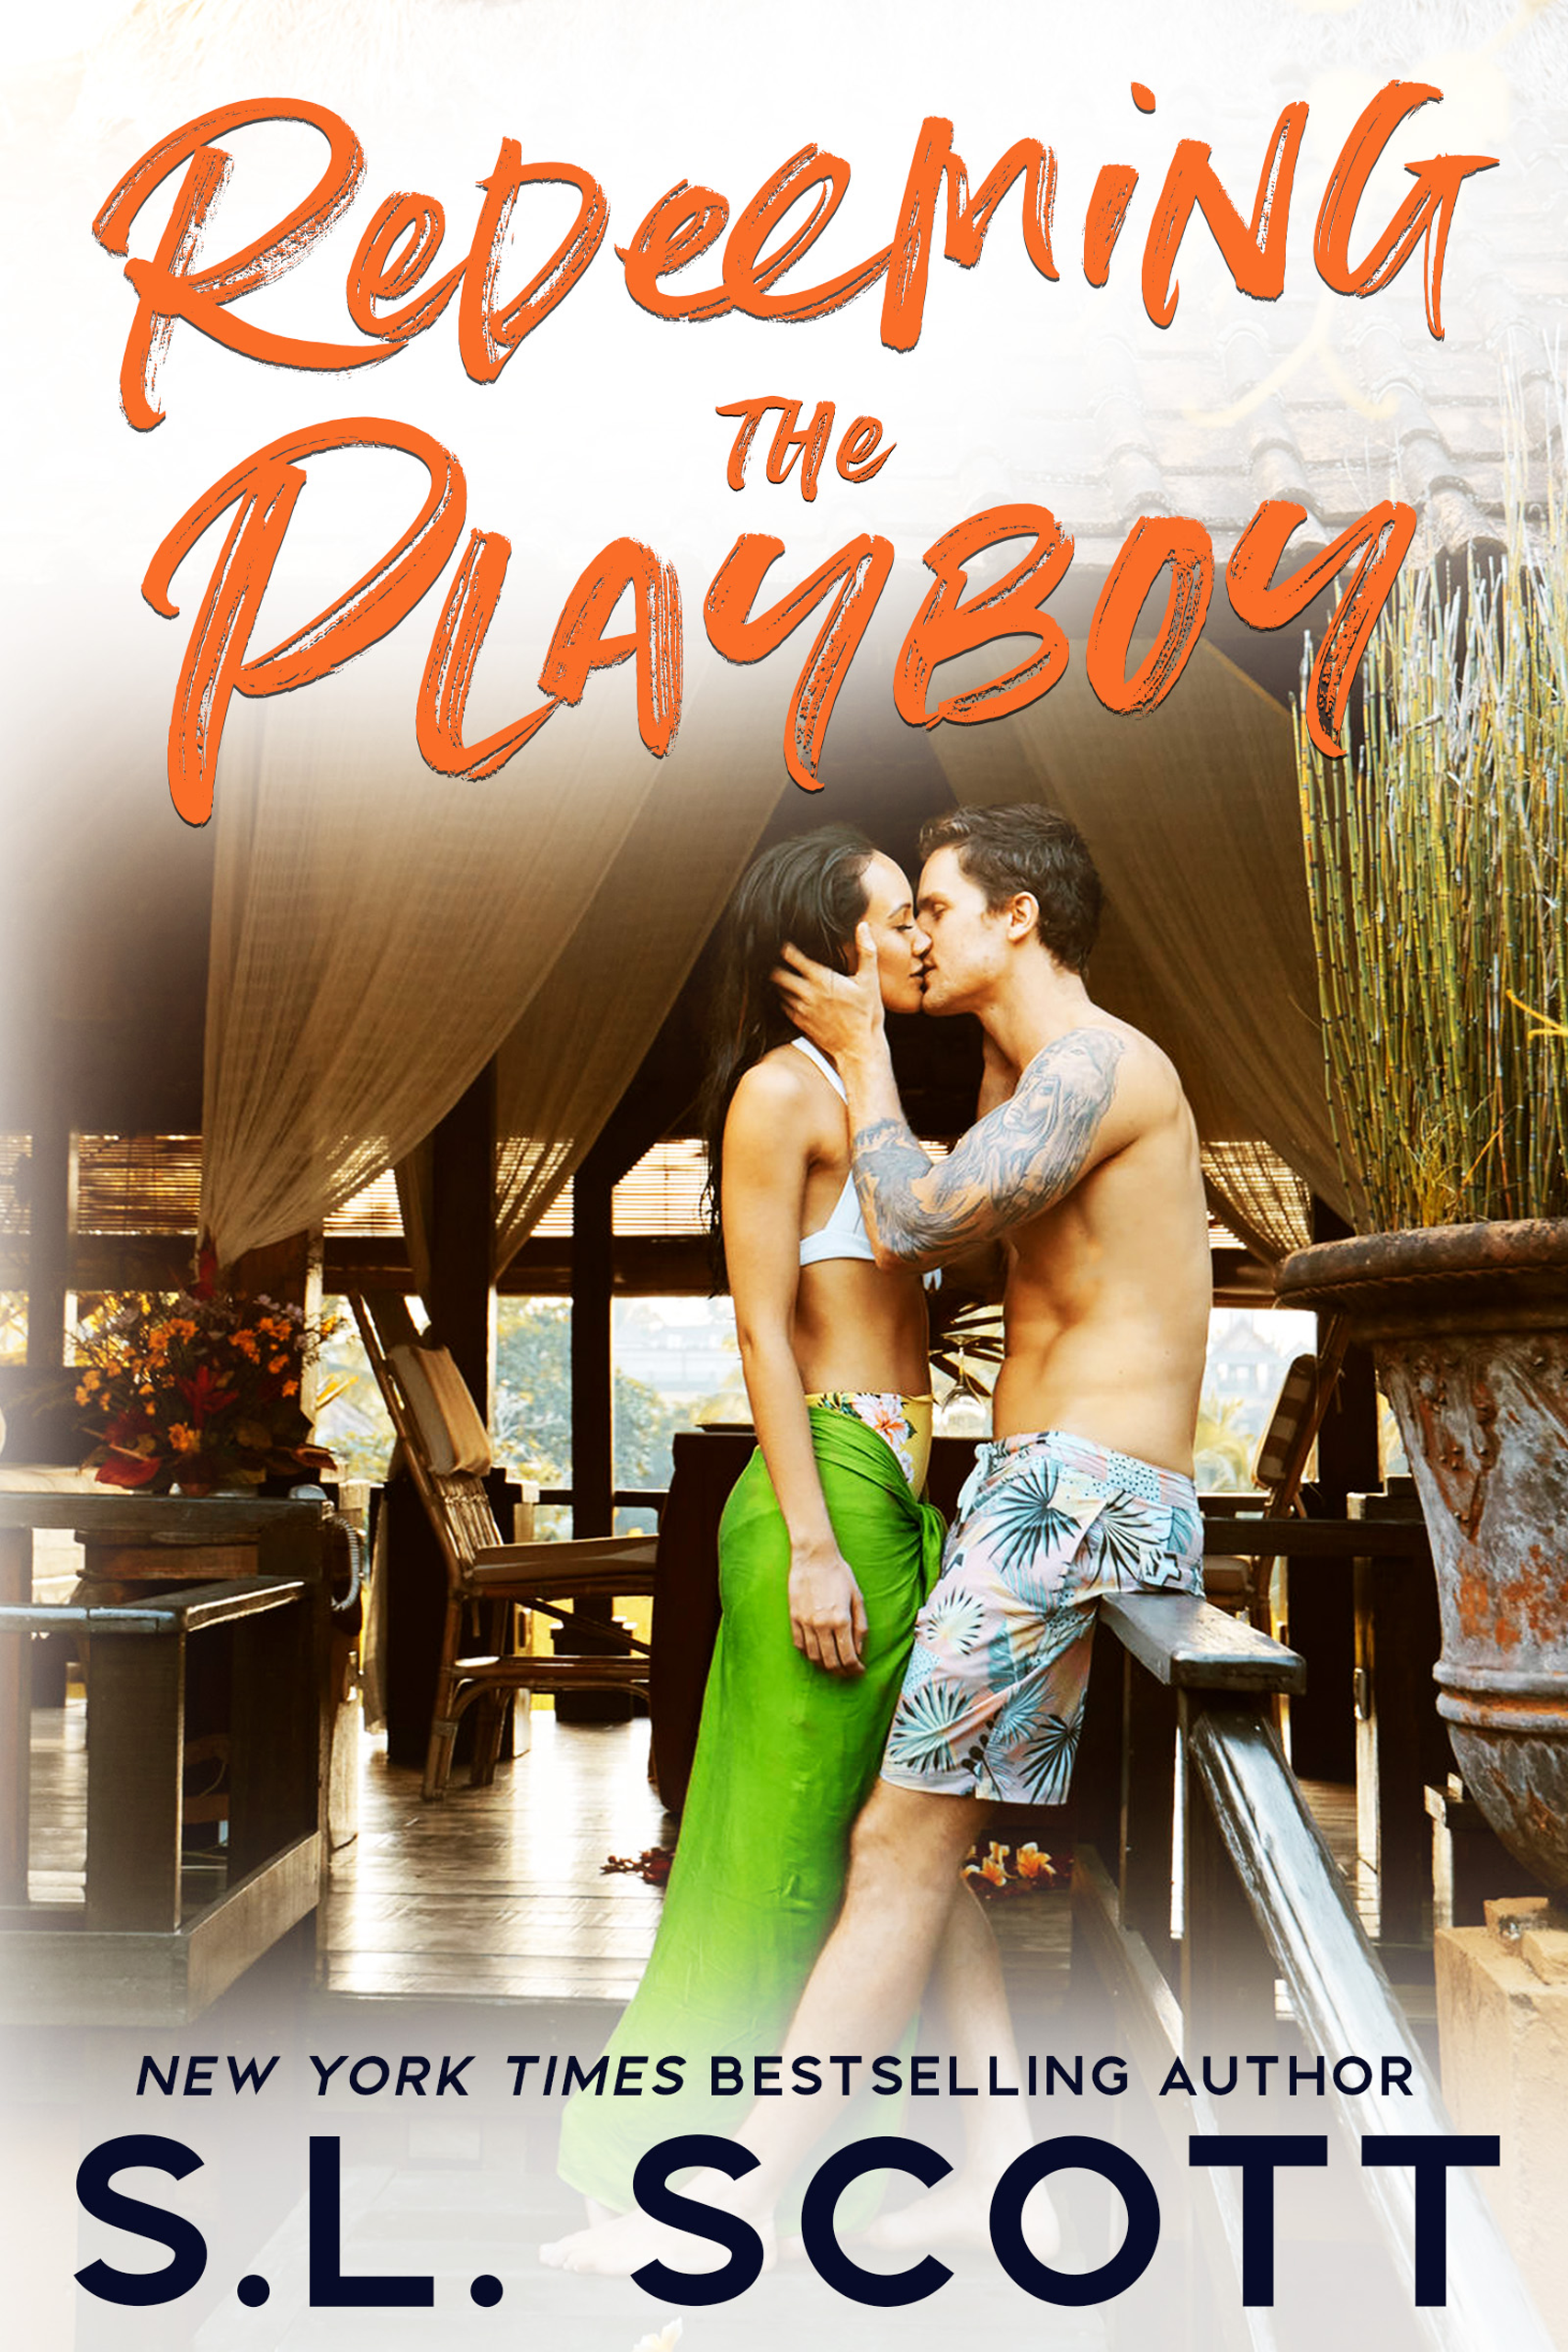 Redeeming the Playboy Ebook cover 1.png